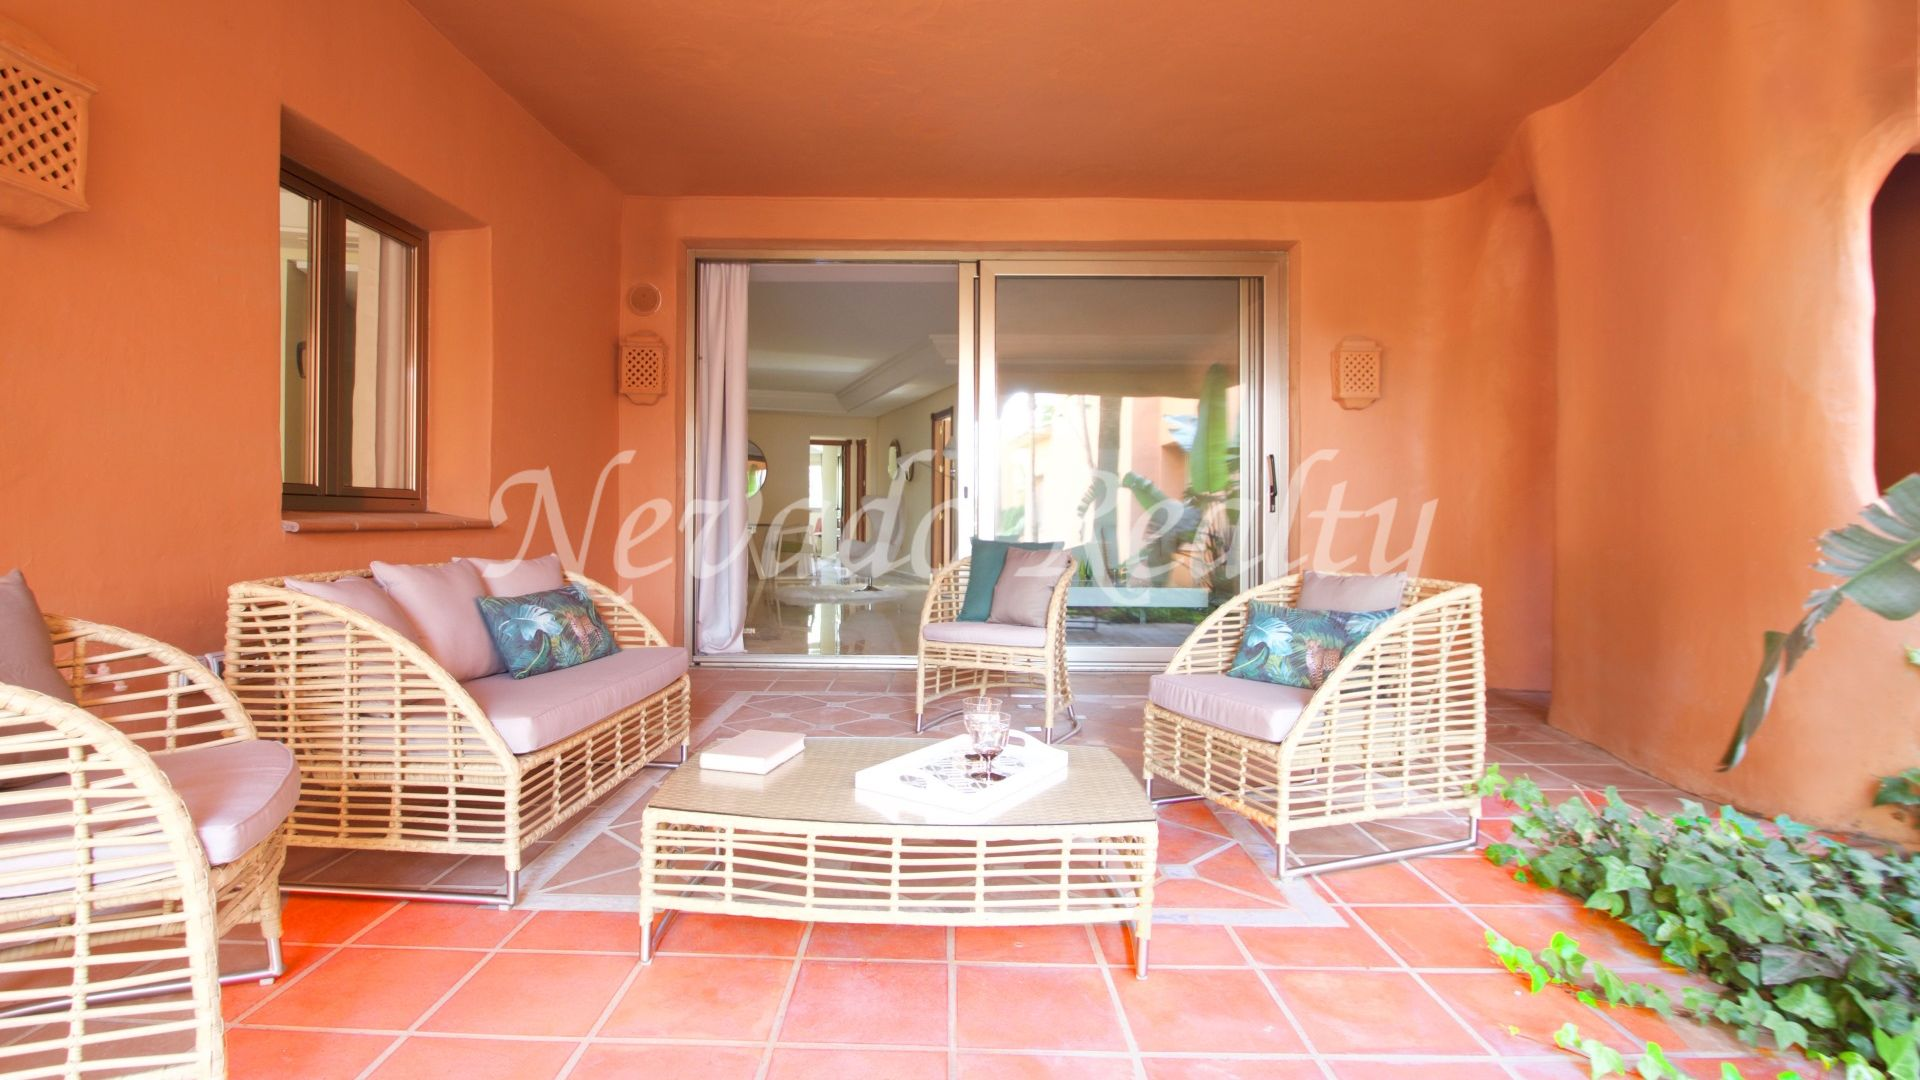 Ground floor apartment with private garden in a luxurious complex facing the beach